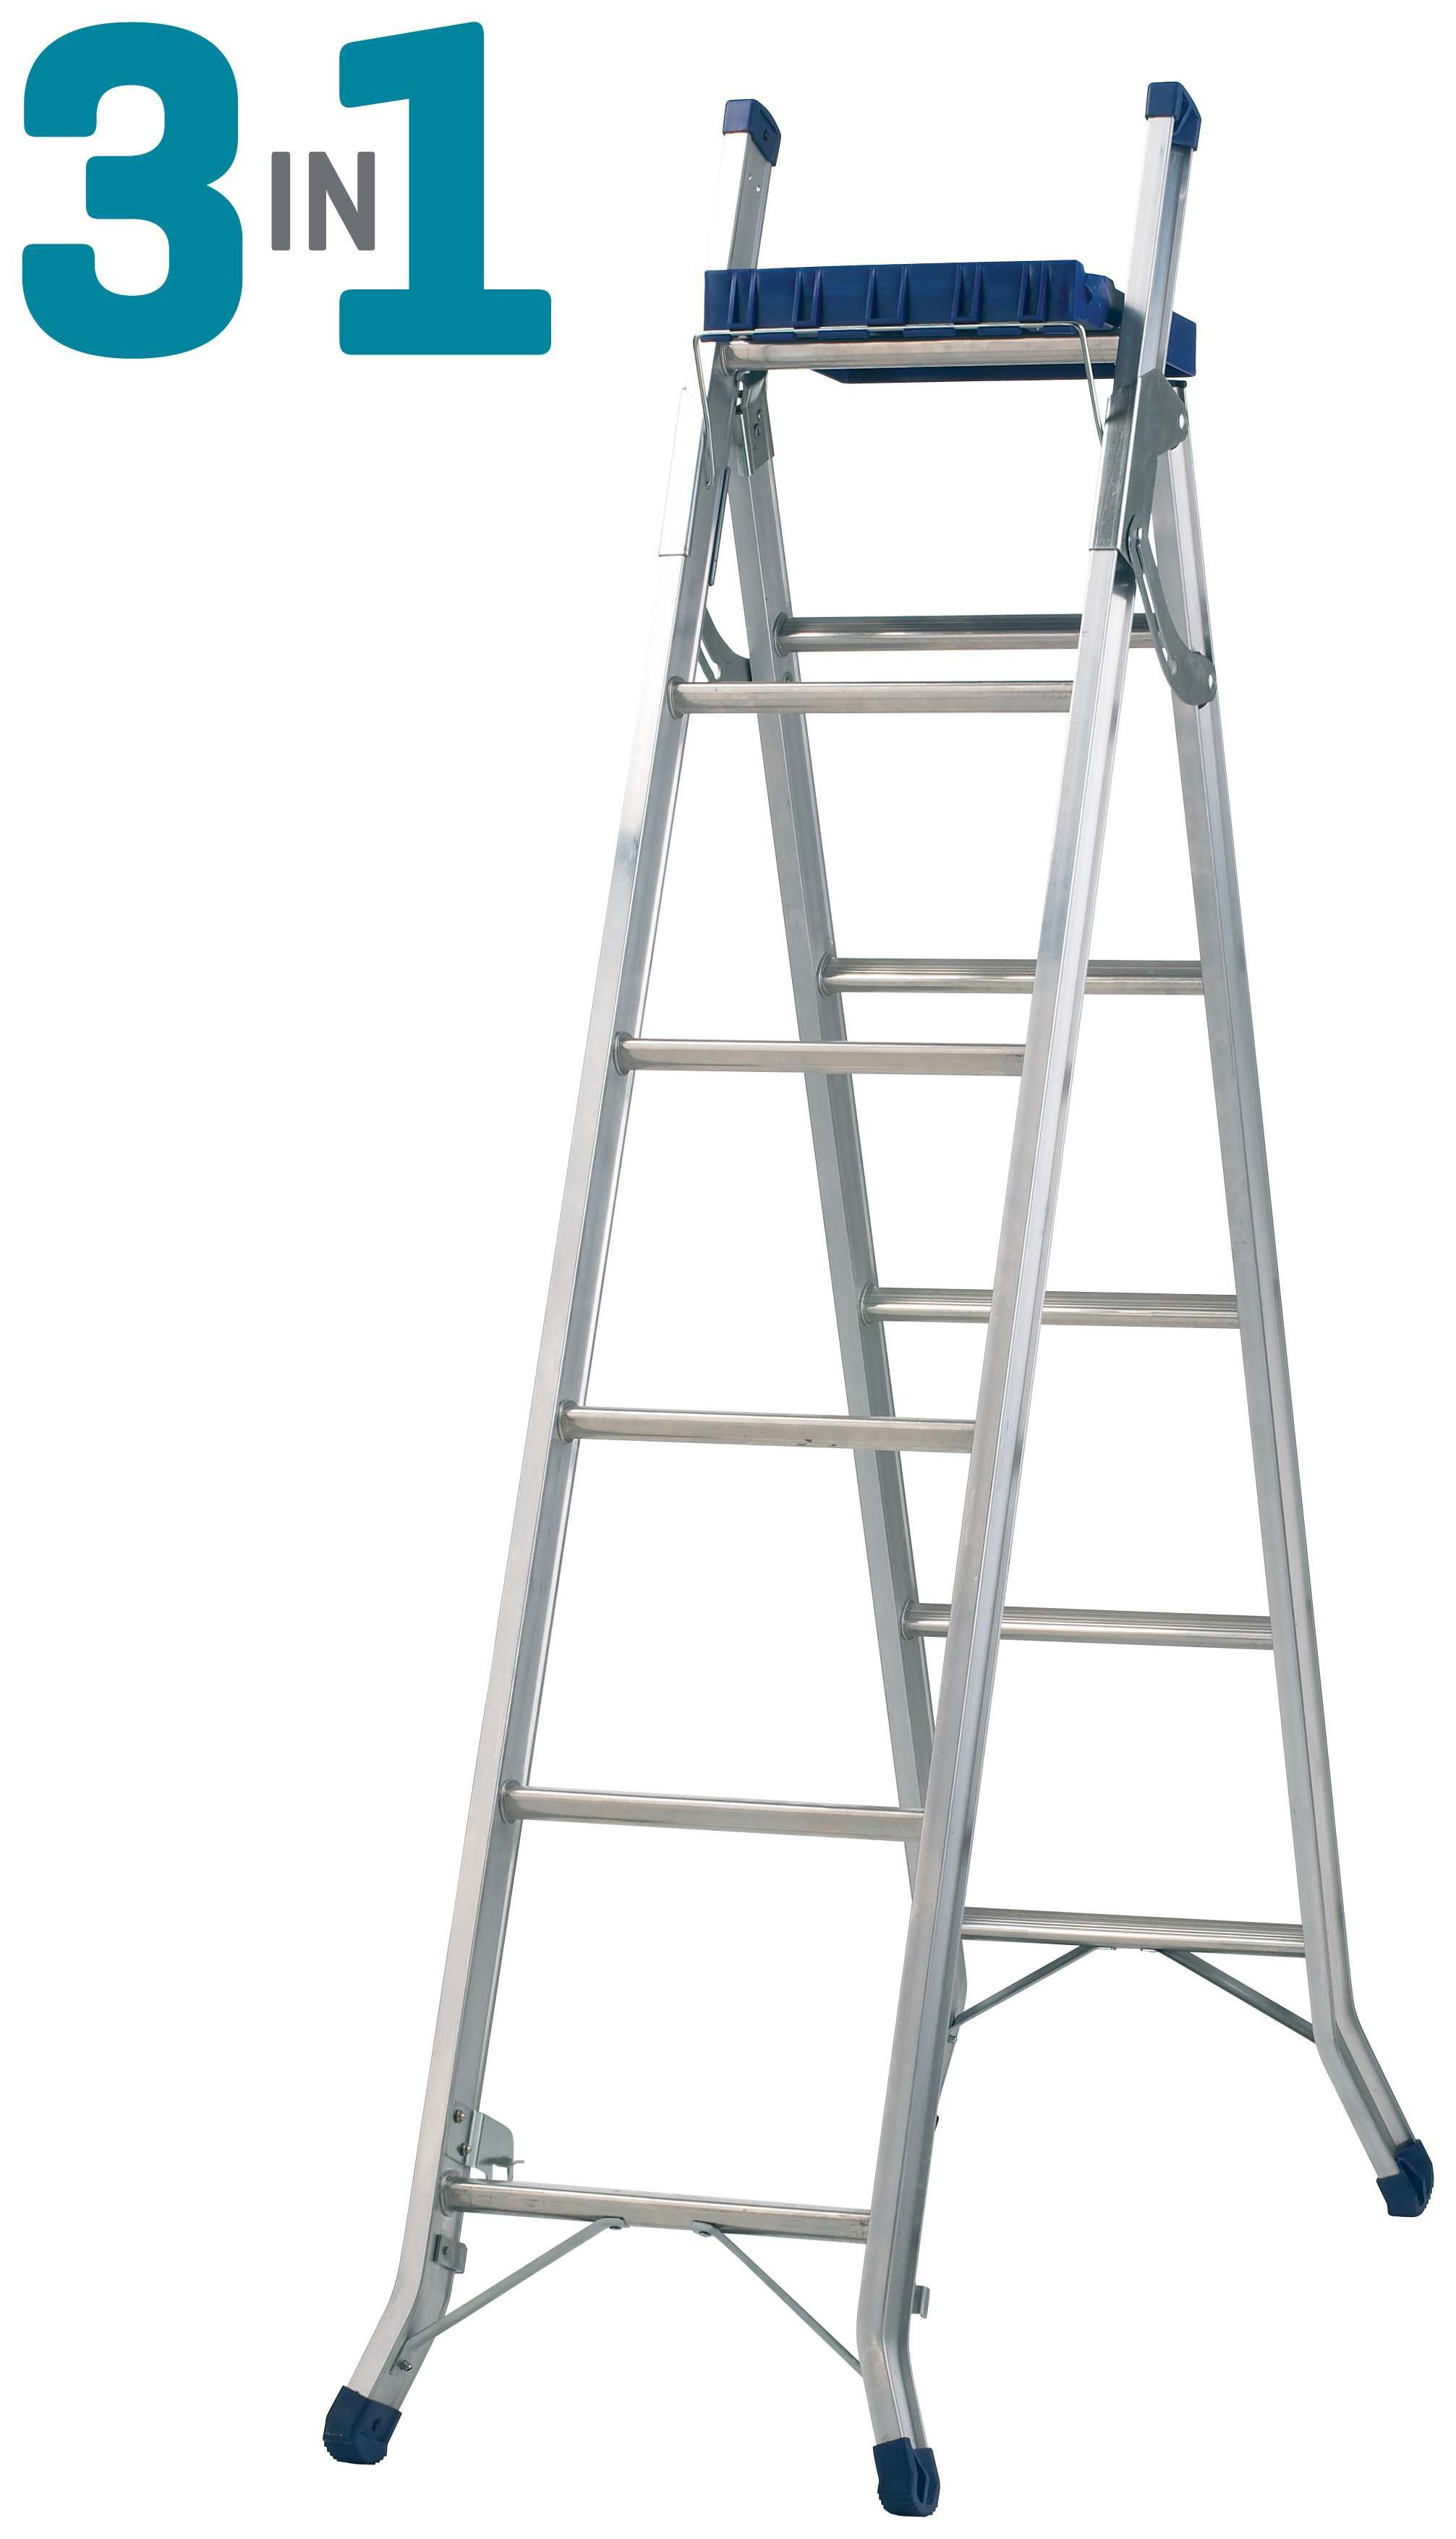 Abru CombinationLadder 3in1 with Tray 3.4m Ext.ReachHeight*